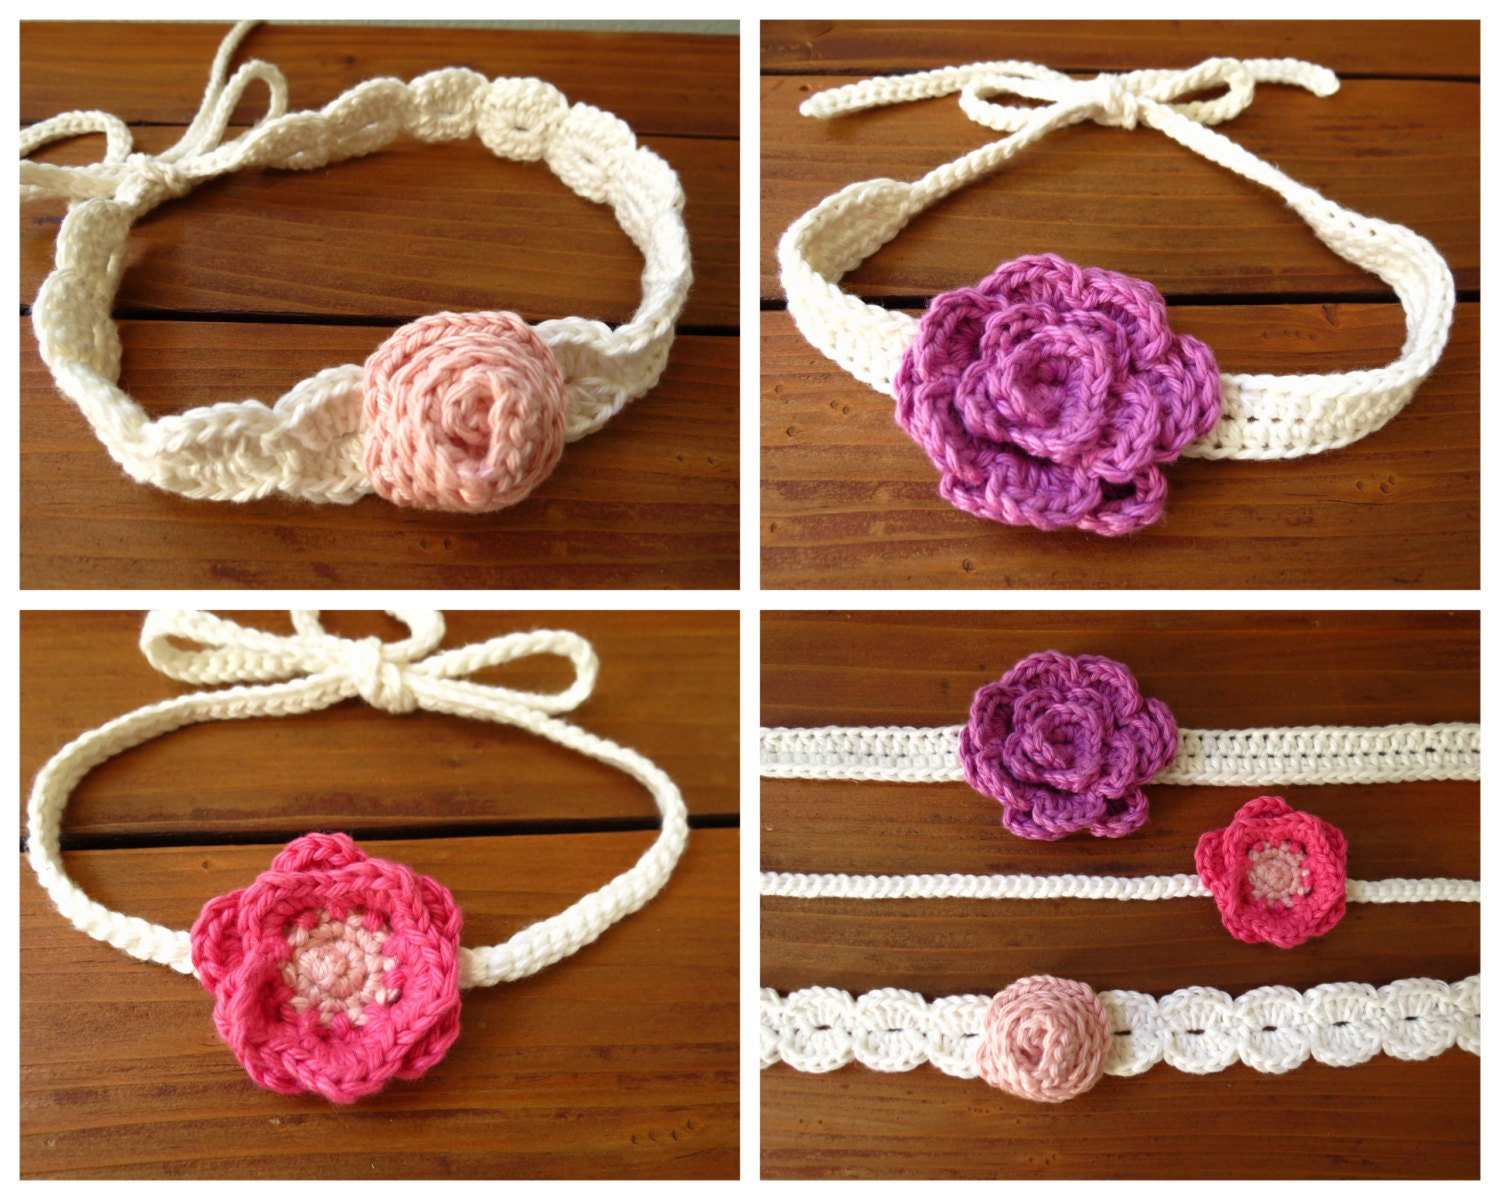 Crochet Headband Pattern For Baby With Flower : Crochet Flower Headband Pattern Crochet Patterns by Deborah